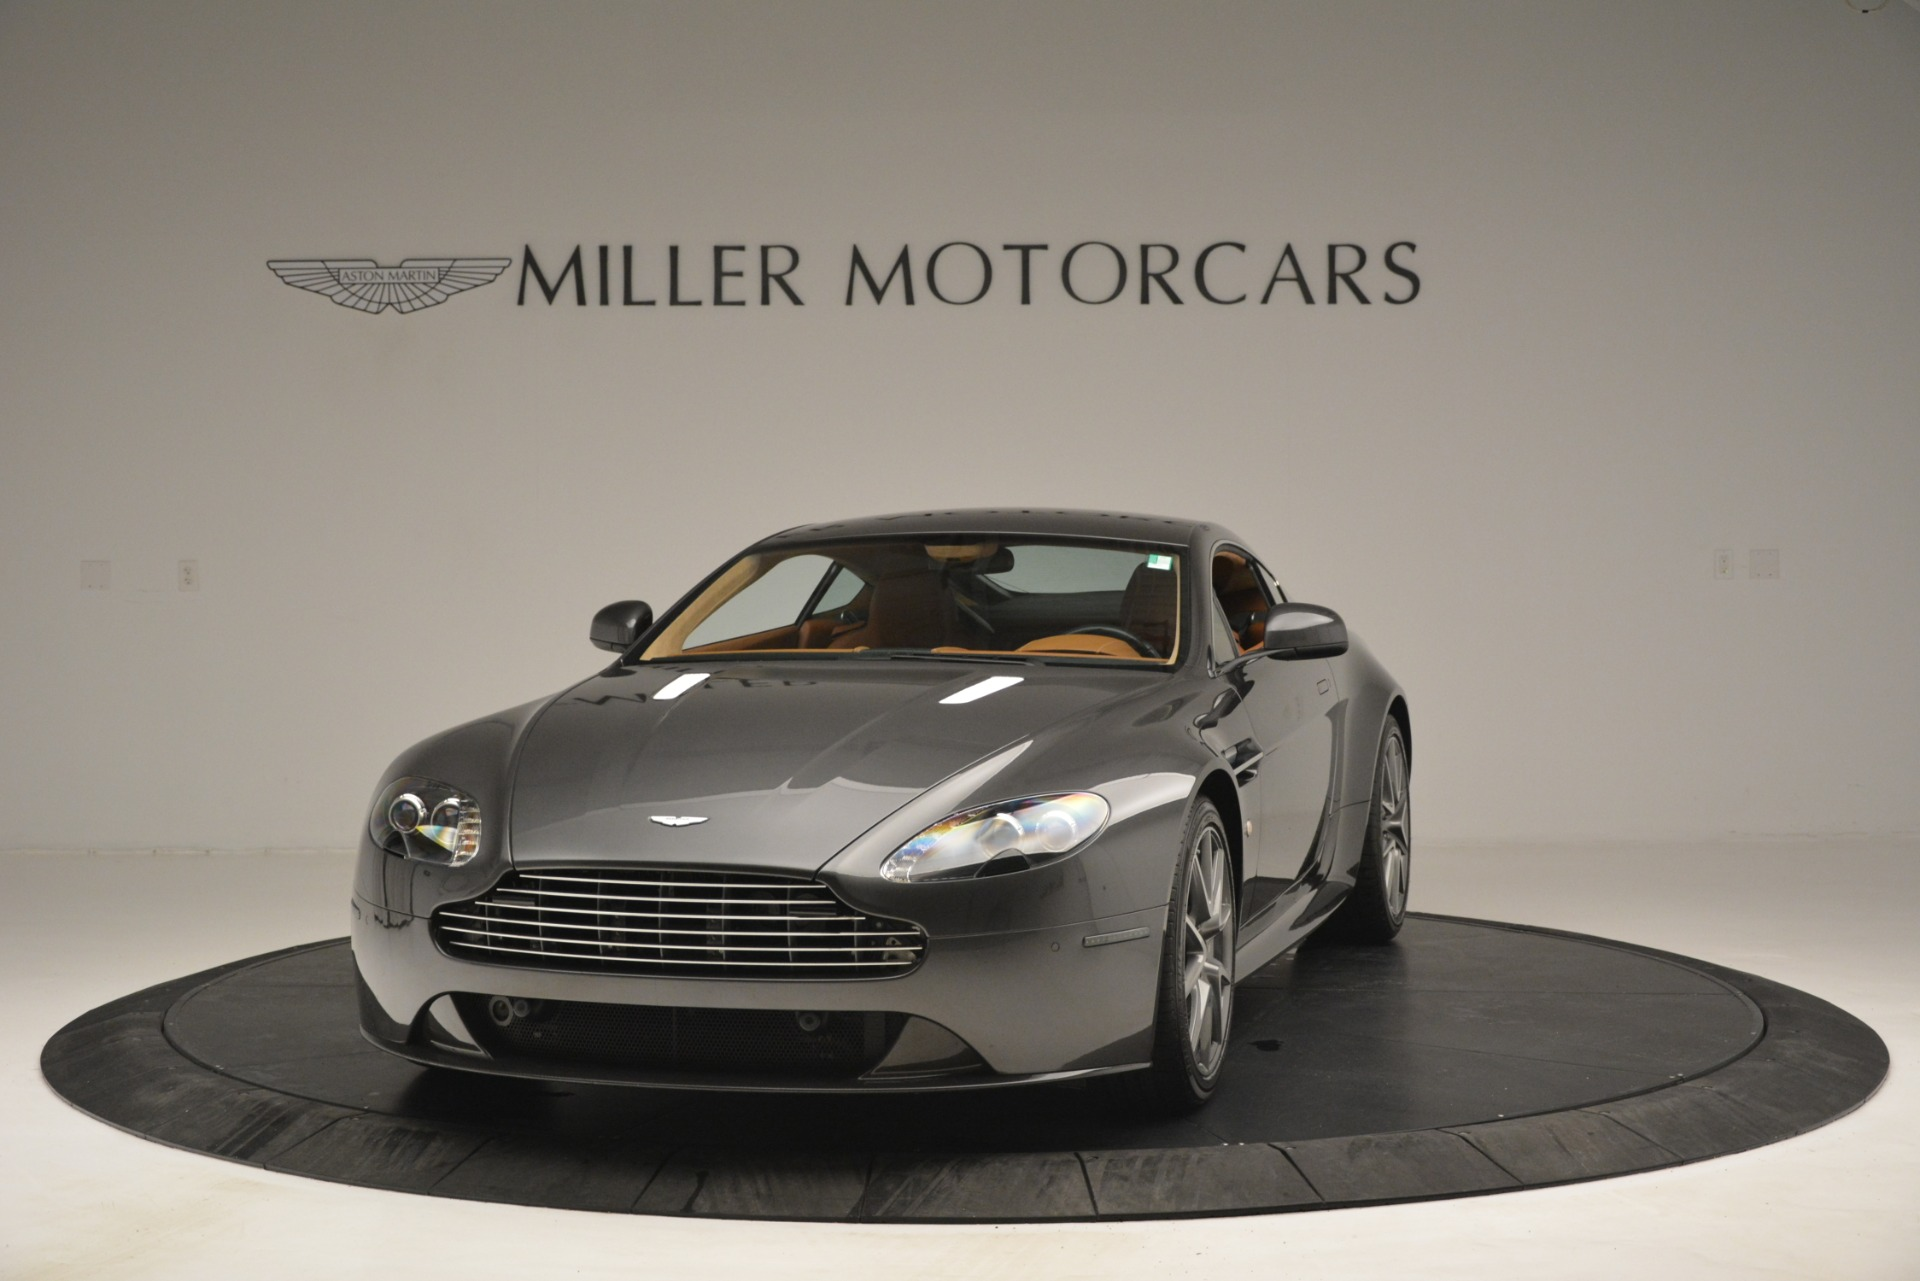 Used 2012 Aston Martin V8 Vantage S Coupe for sale Sold at Rolls-Royce Motor Cars Greenwich in Greenwich CT 06830 1